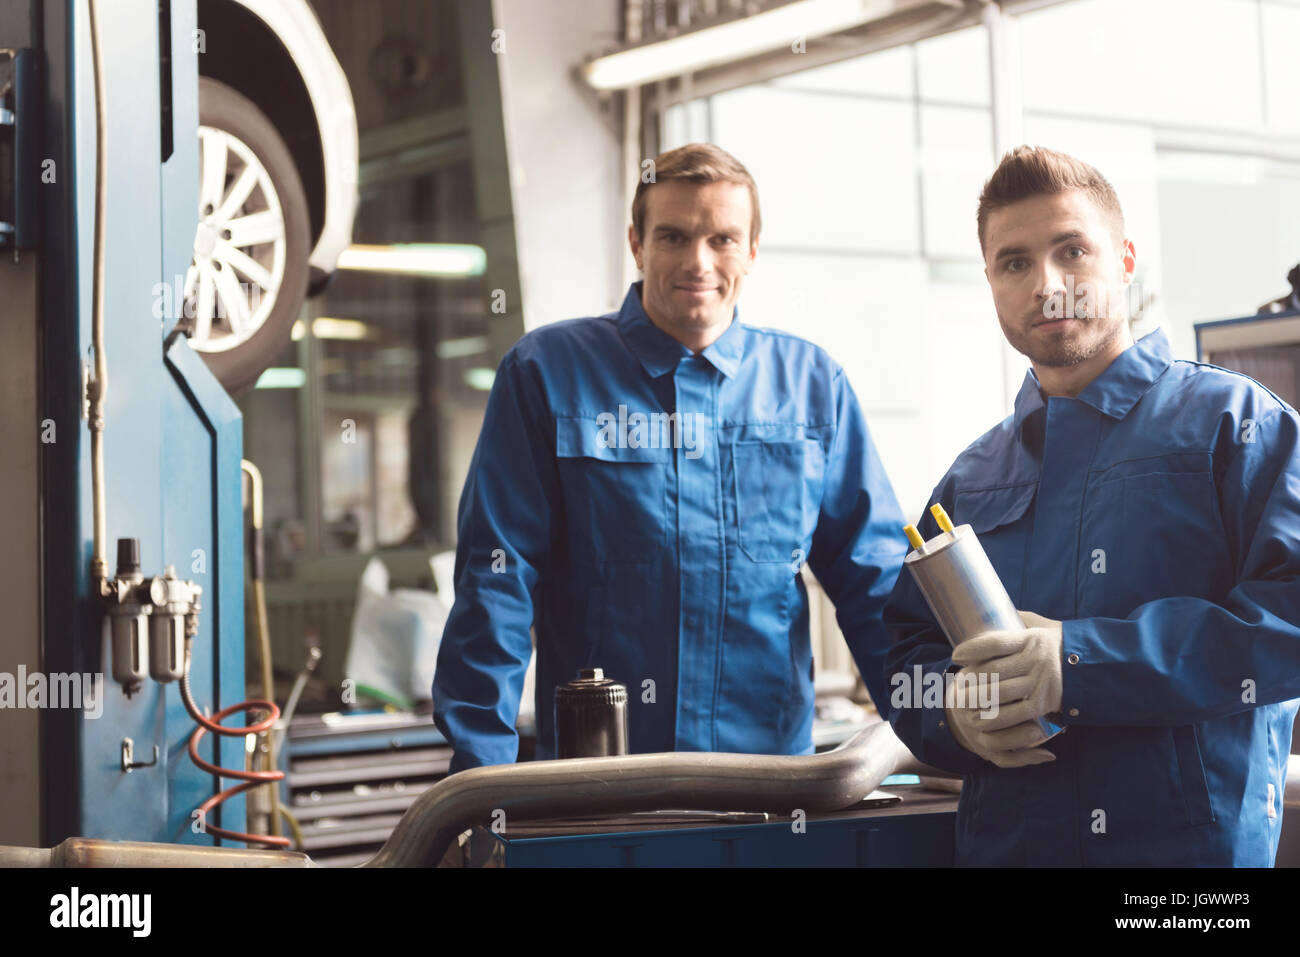 Local team. Hardworking smart industrious servicemen having a little consultation discussing some work issues while - Stock Image